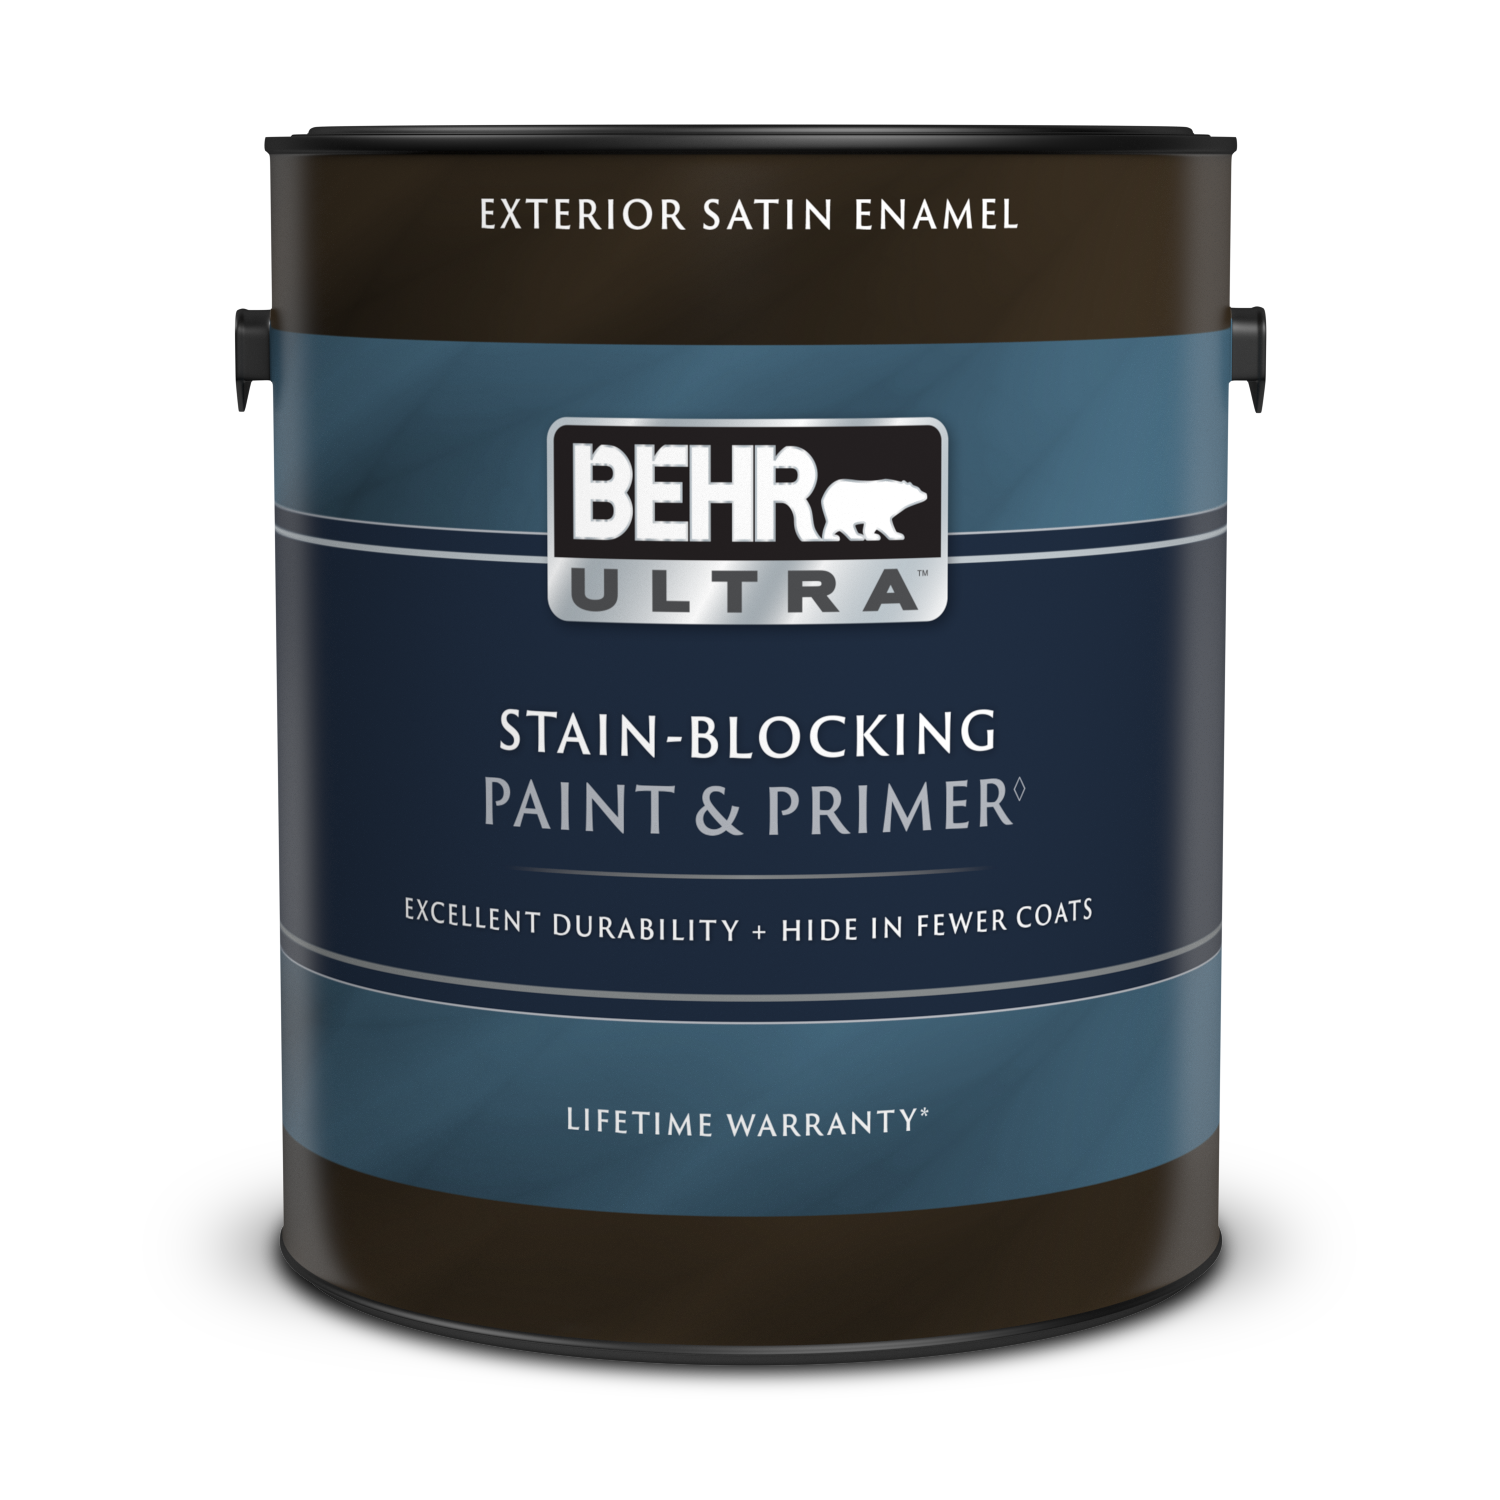 Exterior Satin Enamel Paints Behr Ultra Behr